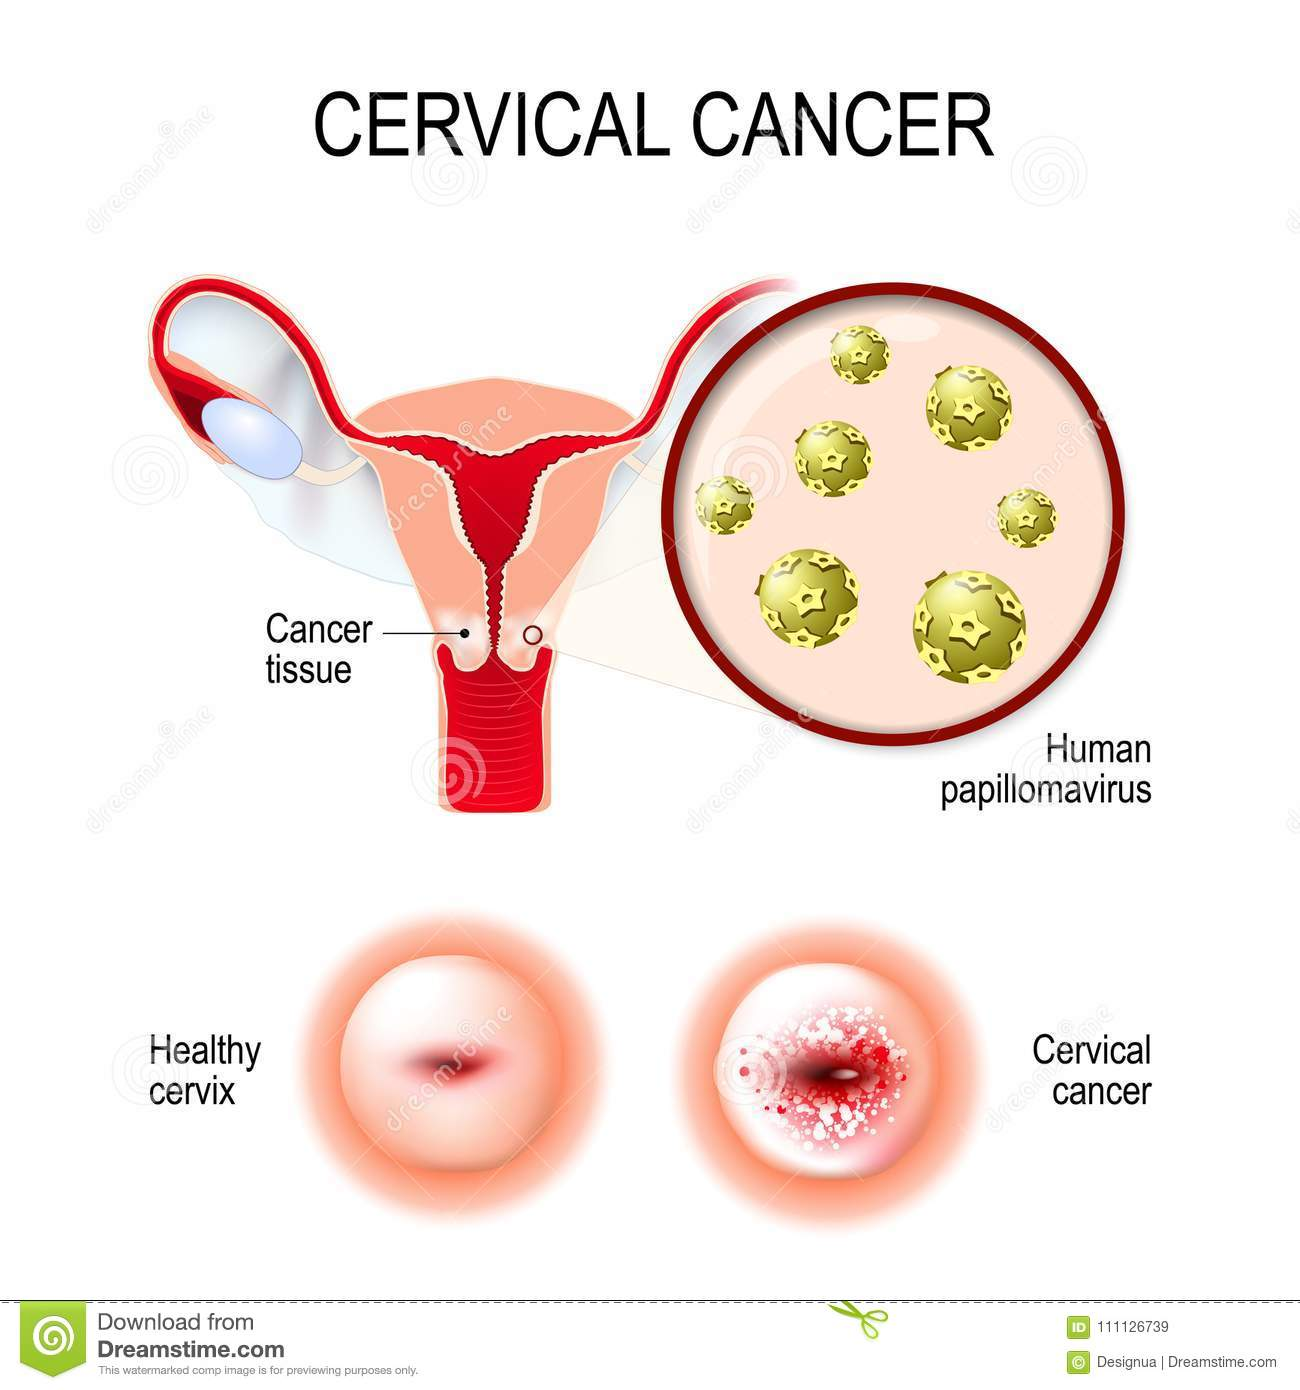 human papillomavirus infection cervical cancer